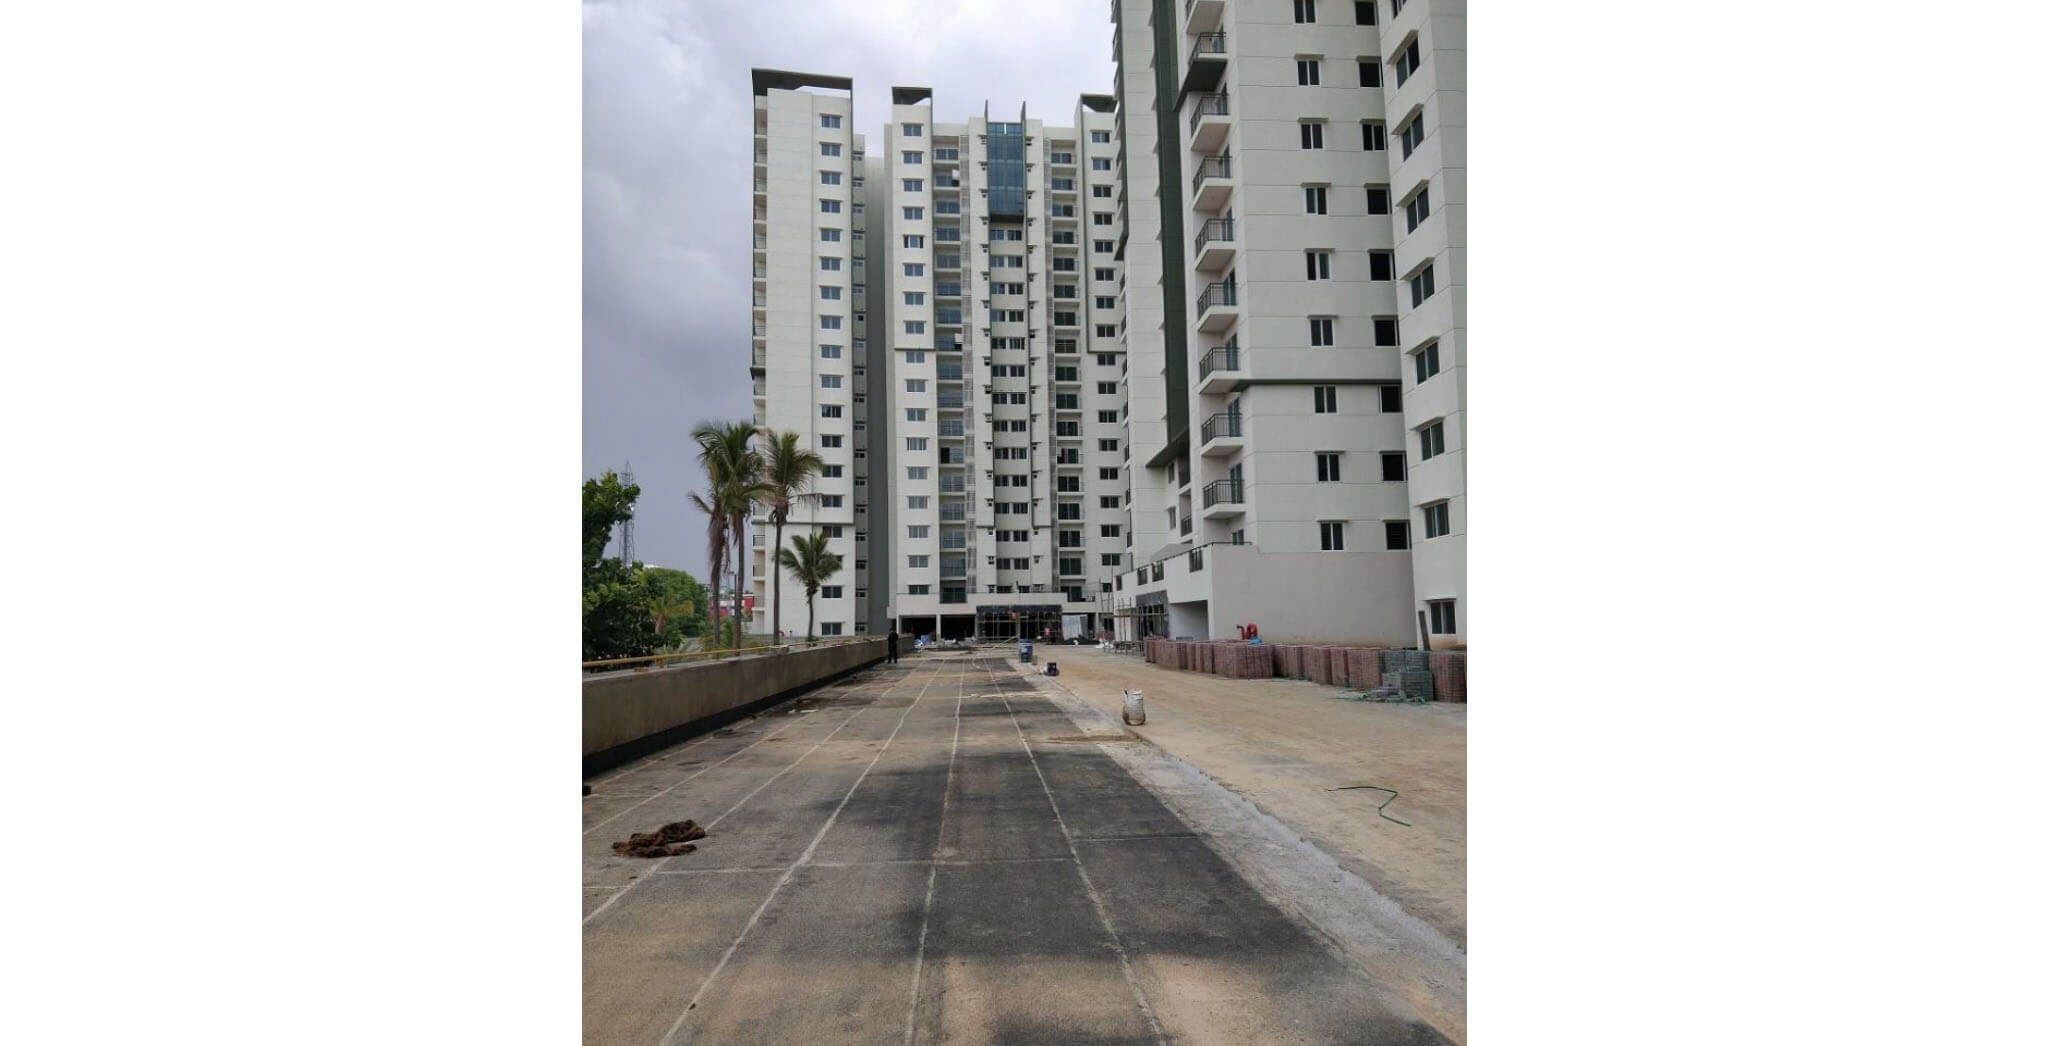 Jun 2018 - Podium level—Waterproofing works nearing completion